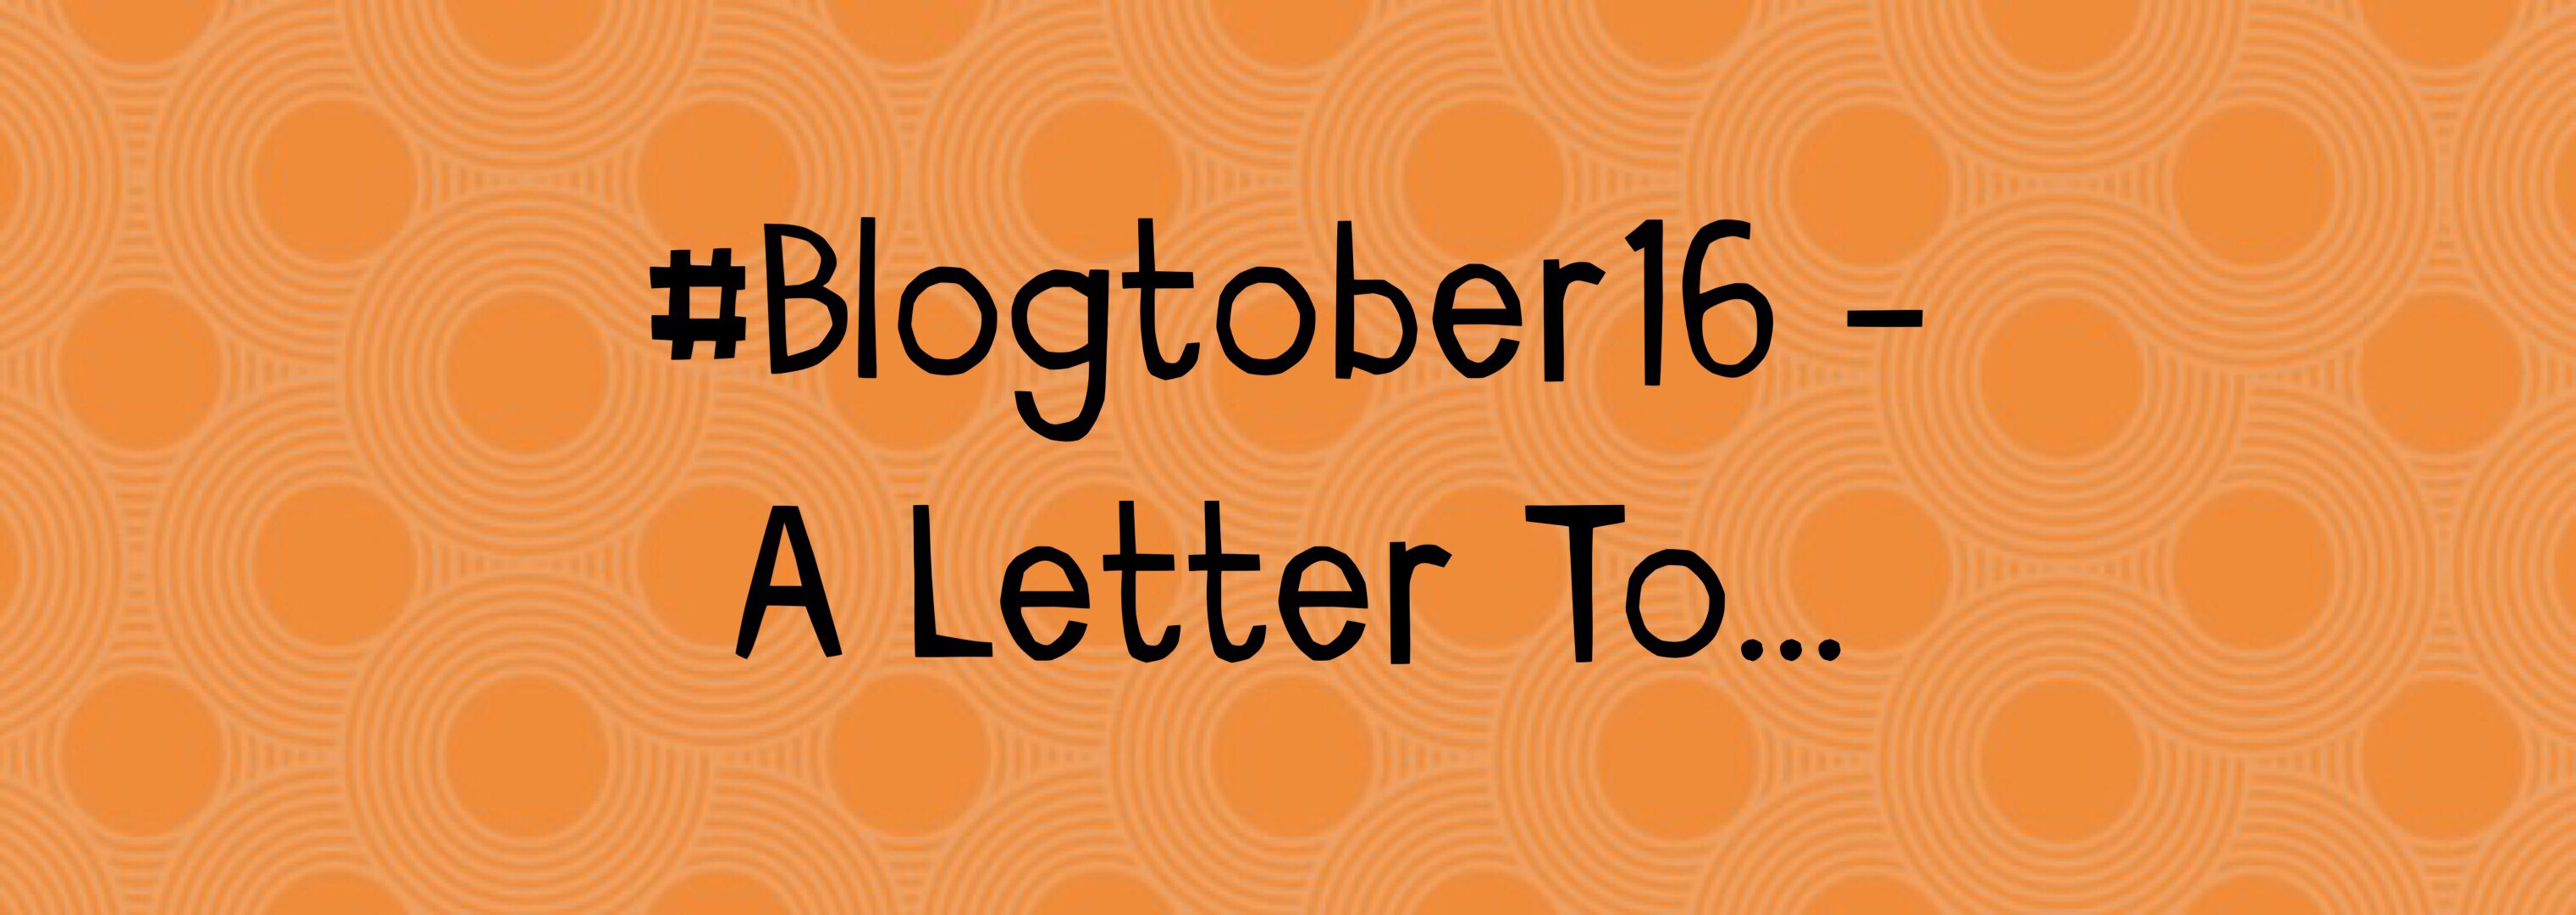 A Letter To…Our First Born, Before You Become A Big Brother – #Blogtober16 Day 21